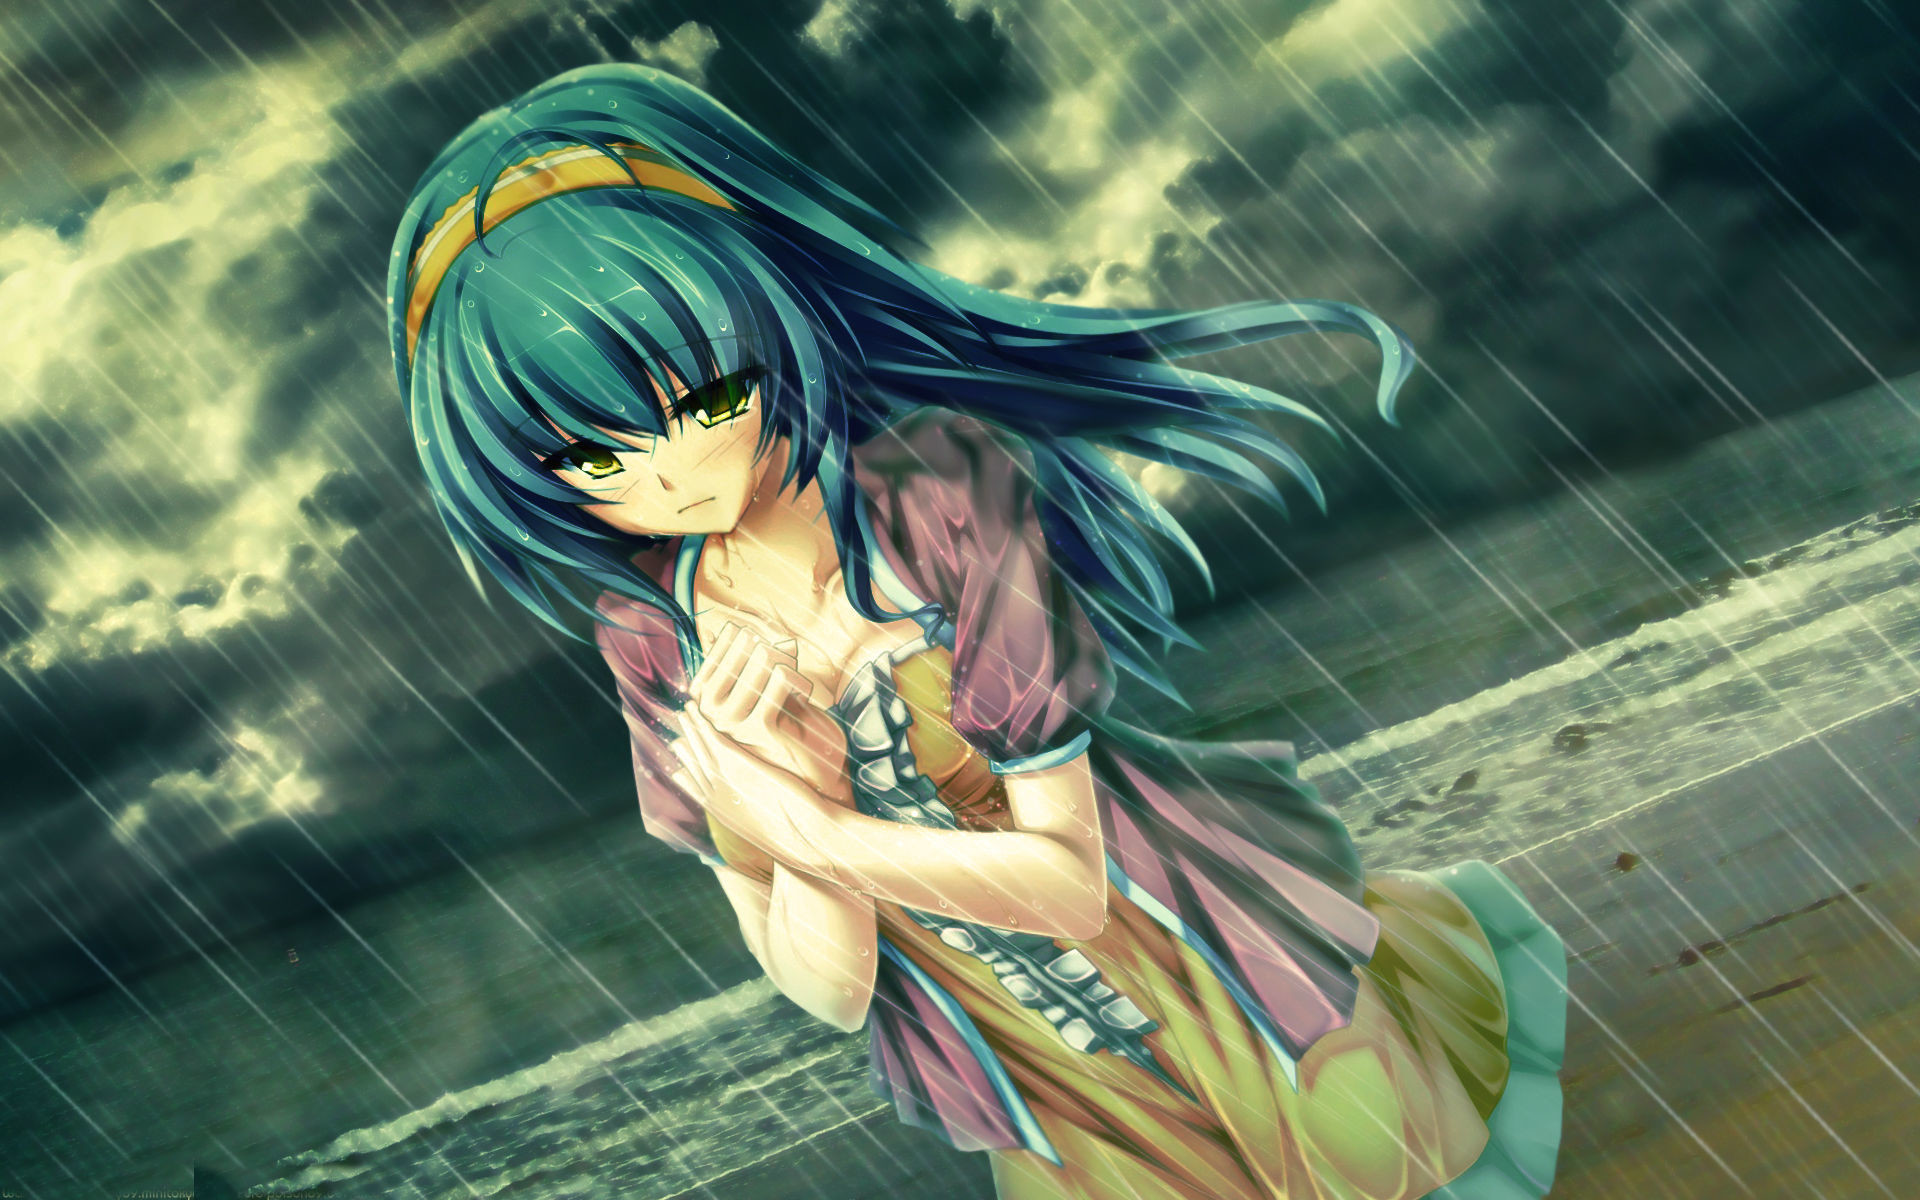 1920x1200 sad anime girl crying in rain alone